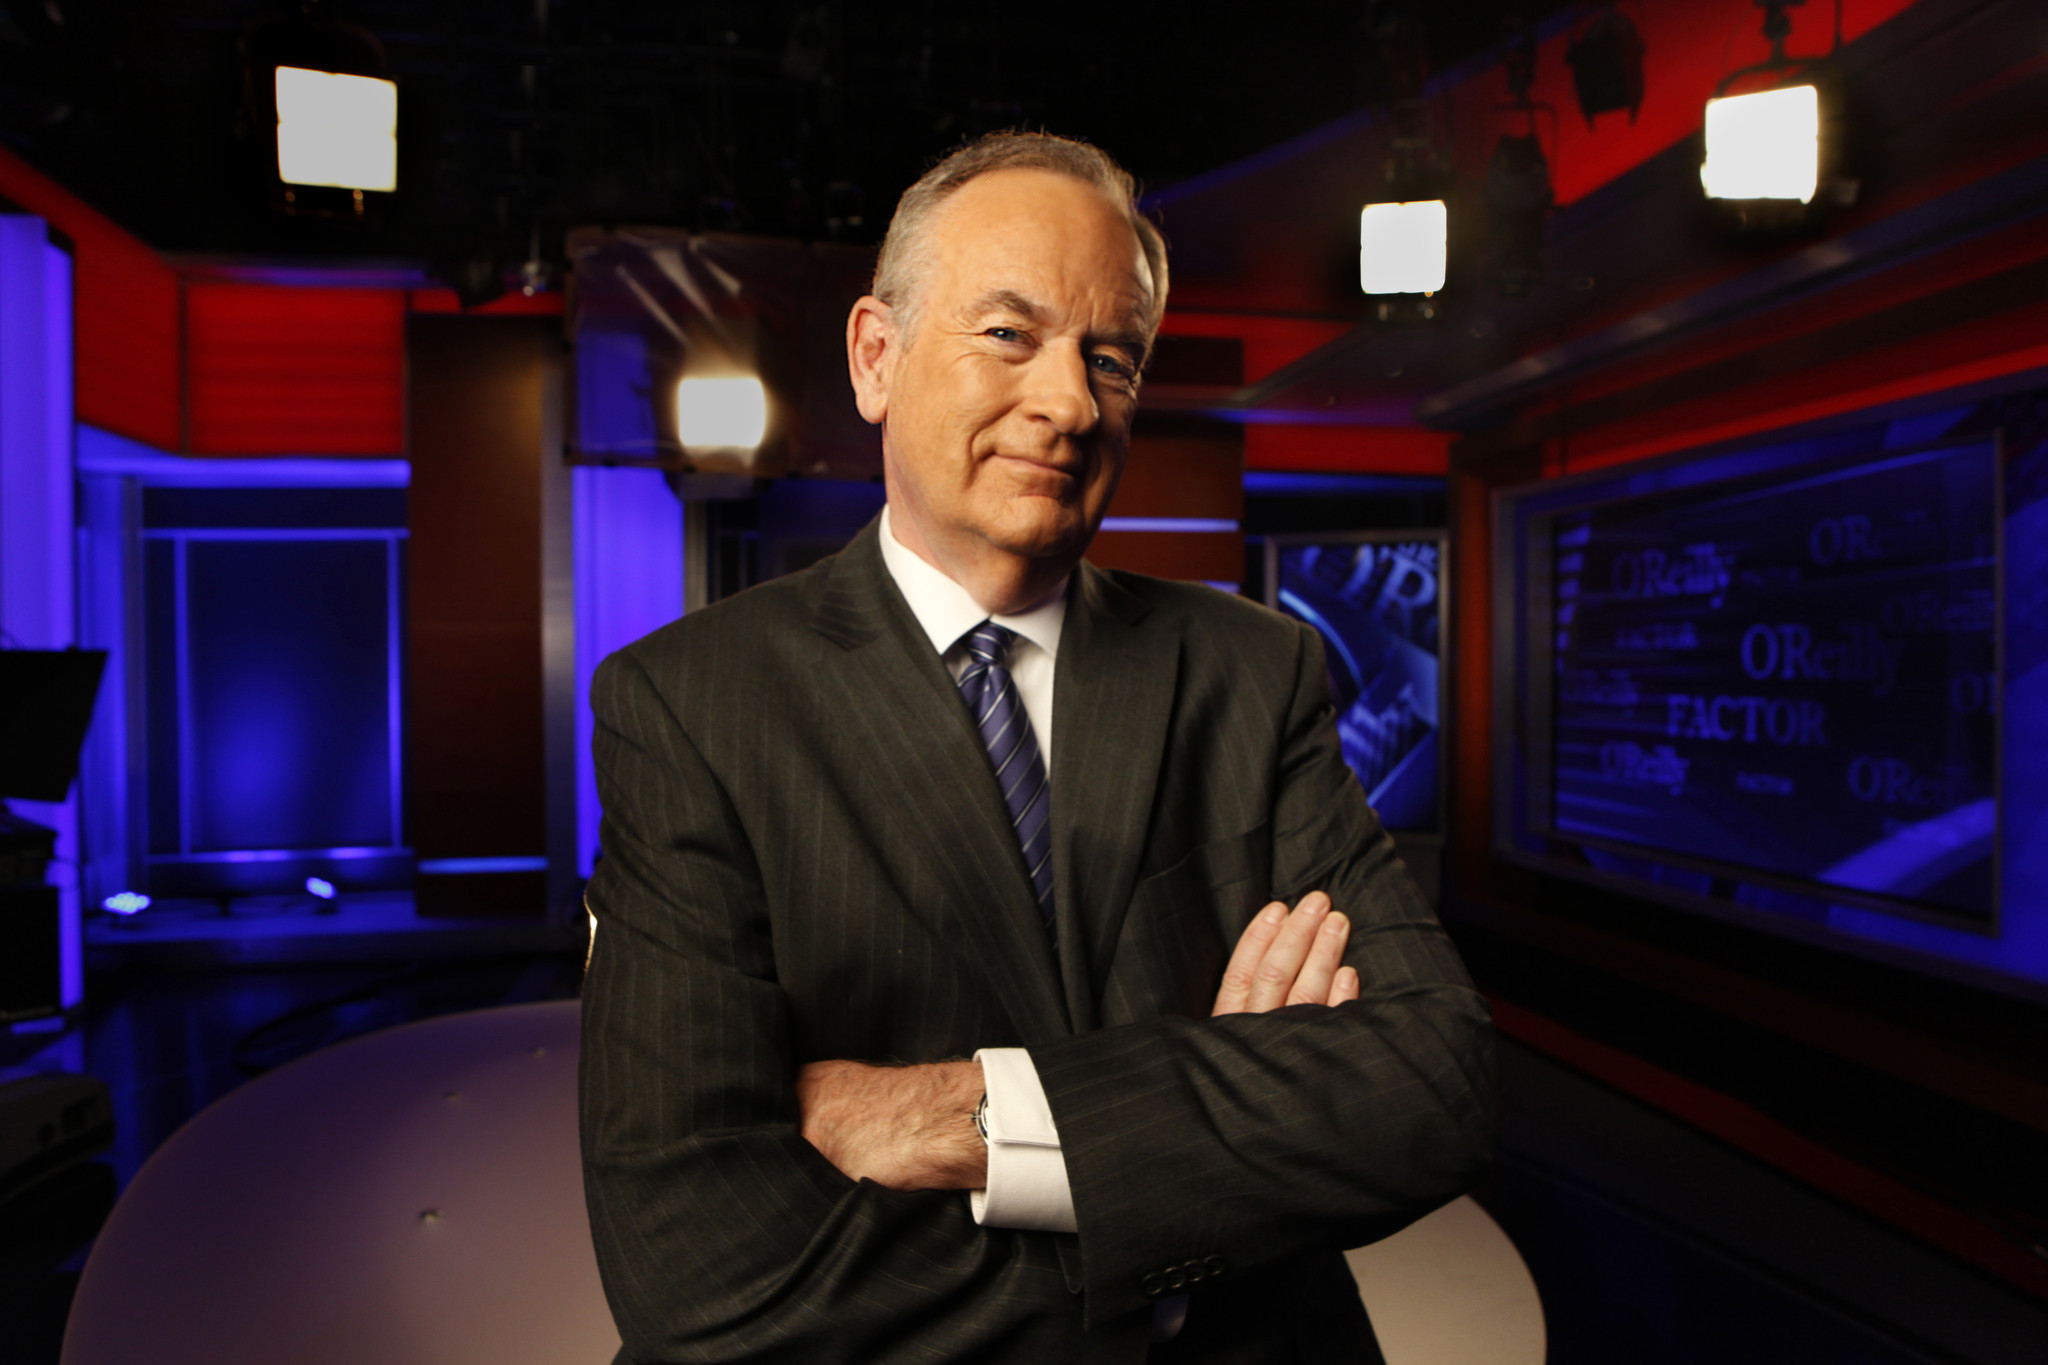 Bill O'Reilly returns to Fox as Hannity's guest